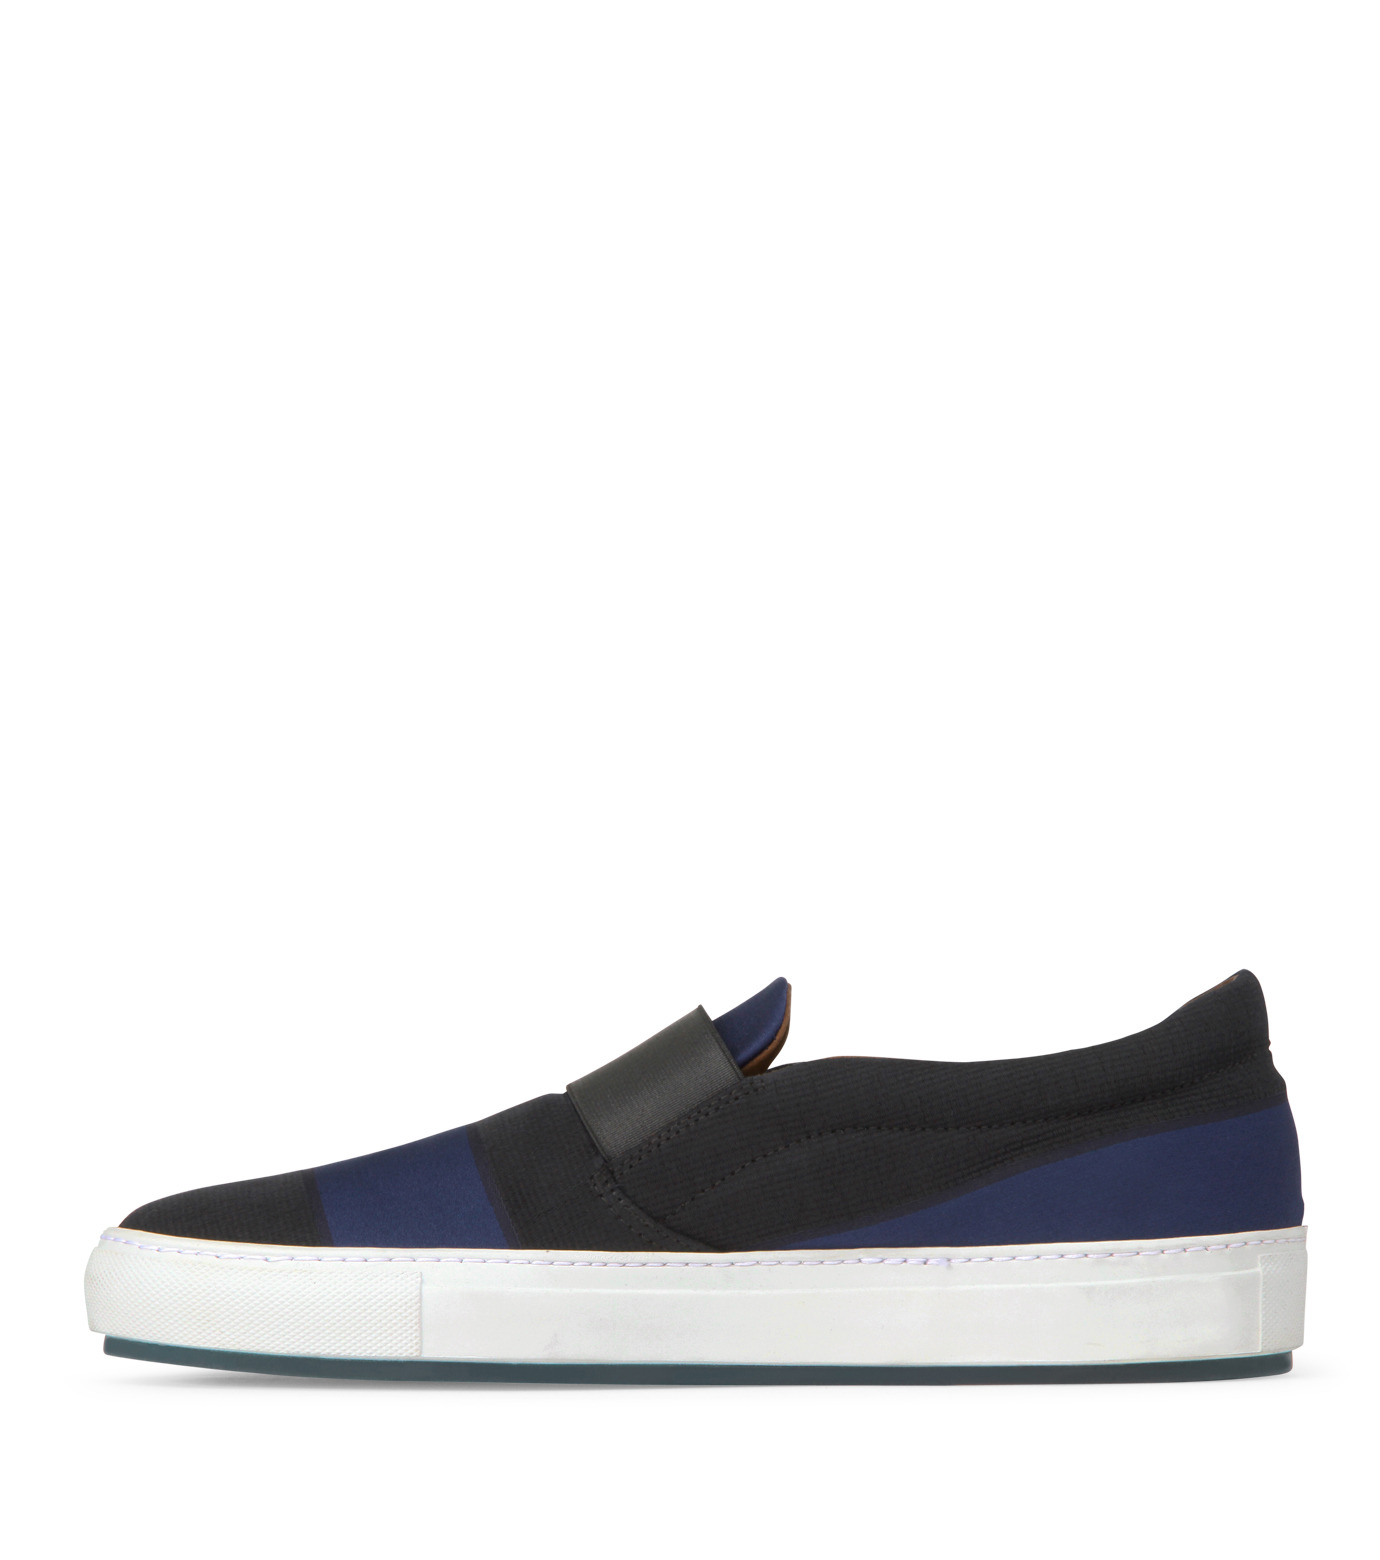 ACNE STUDIOS(アクネ)のSlip on-BLACK-HANS-COTTON-13 拡大詳細画像2